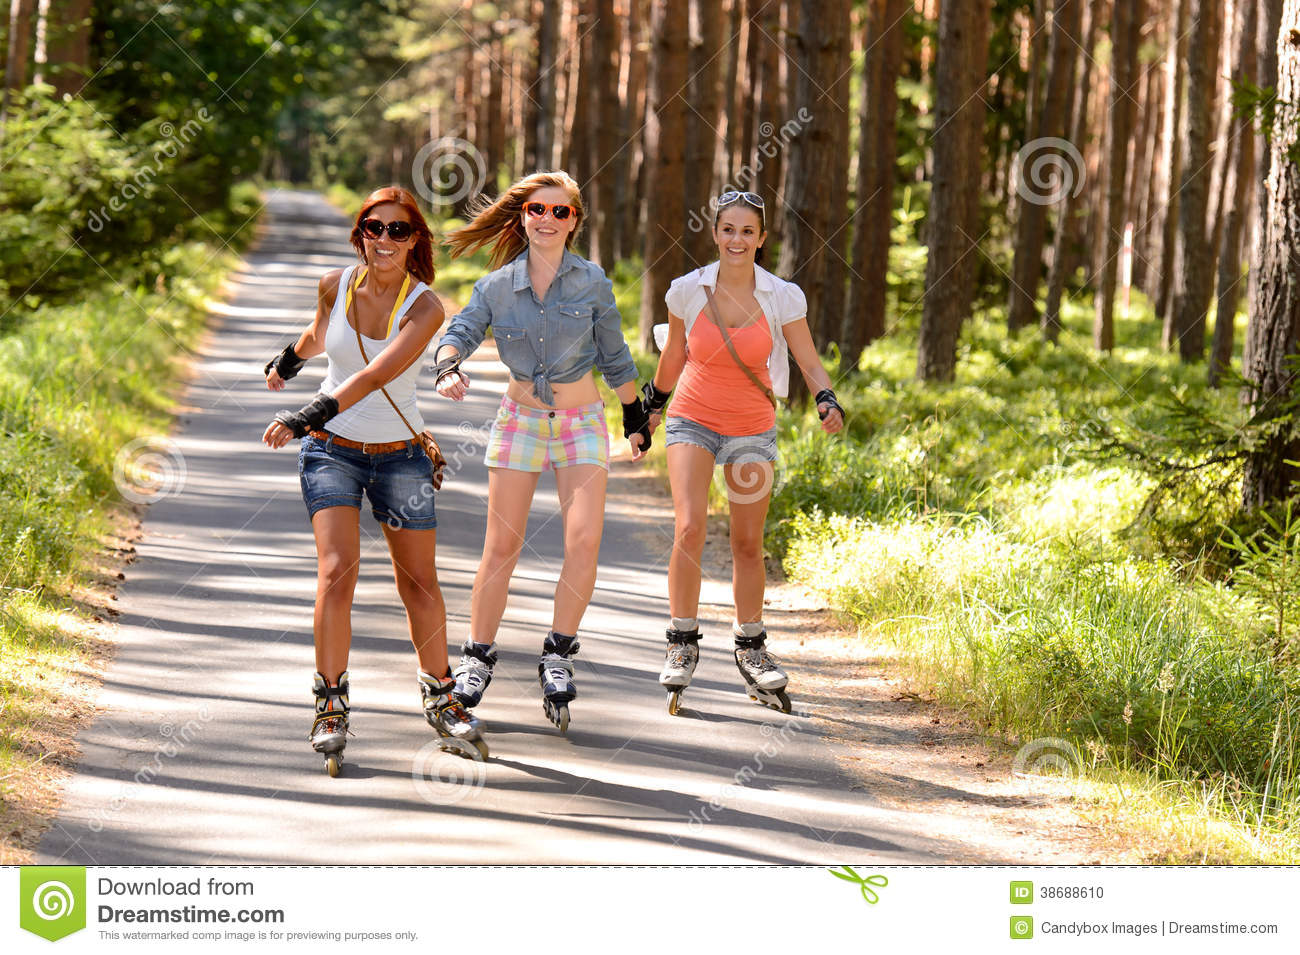 Roller skating babies - Three Friends On In Line Skates Outdoor